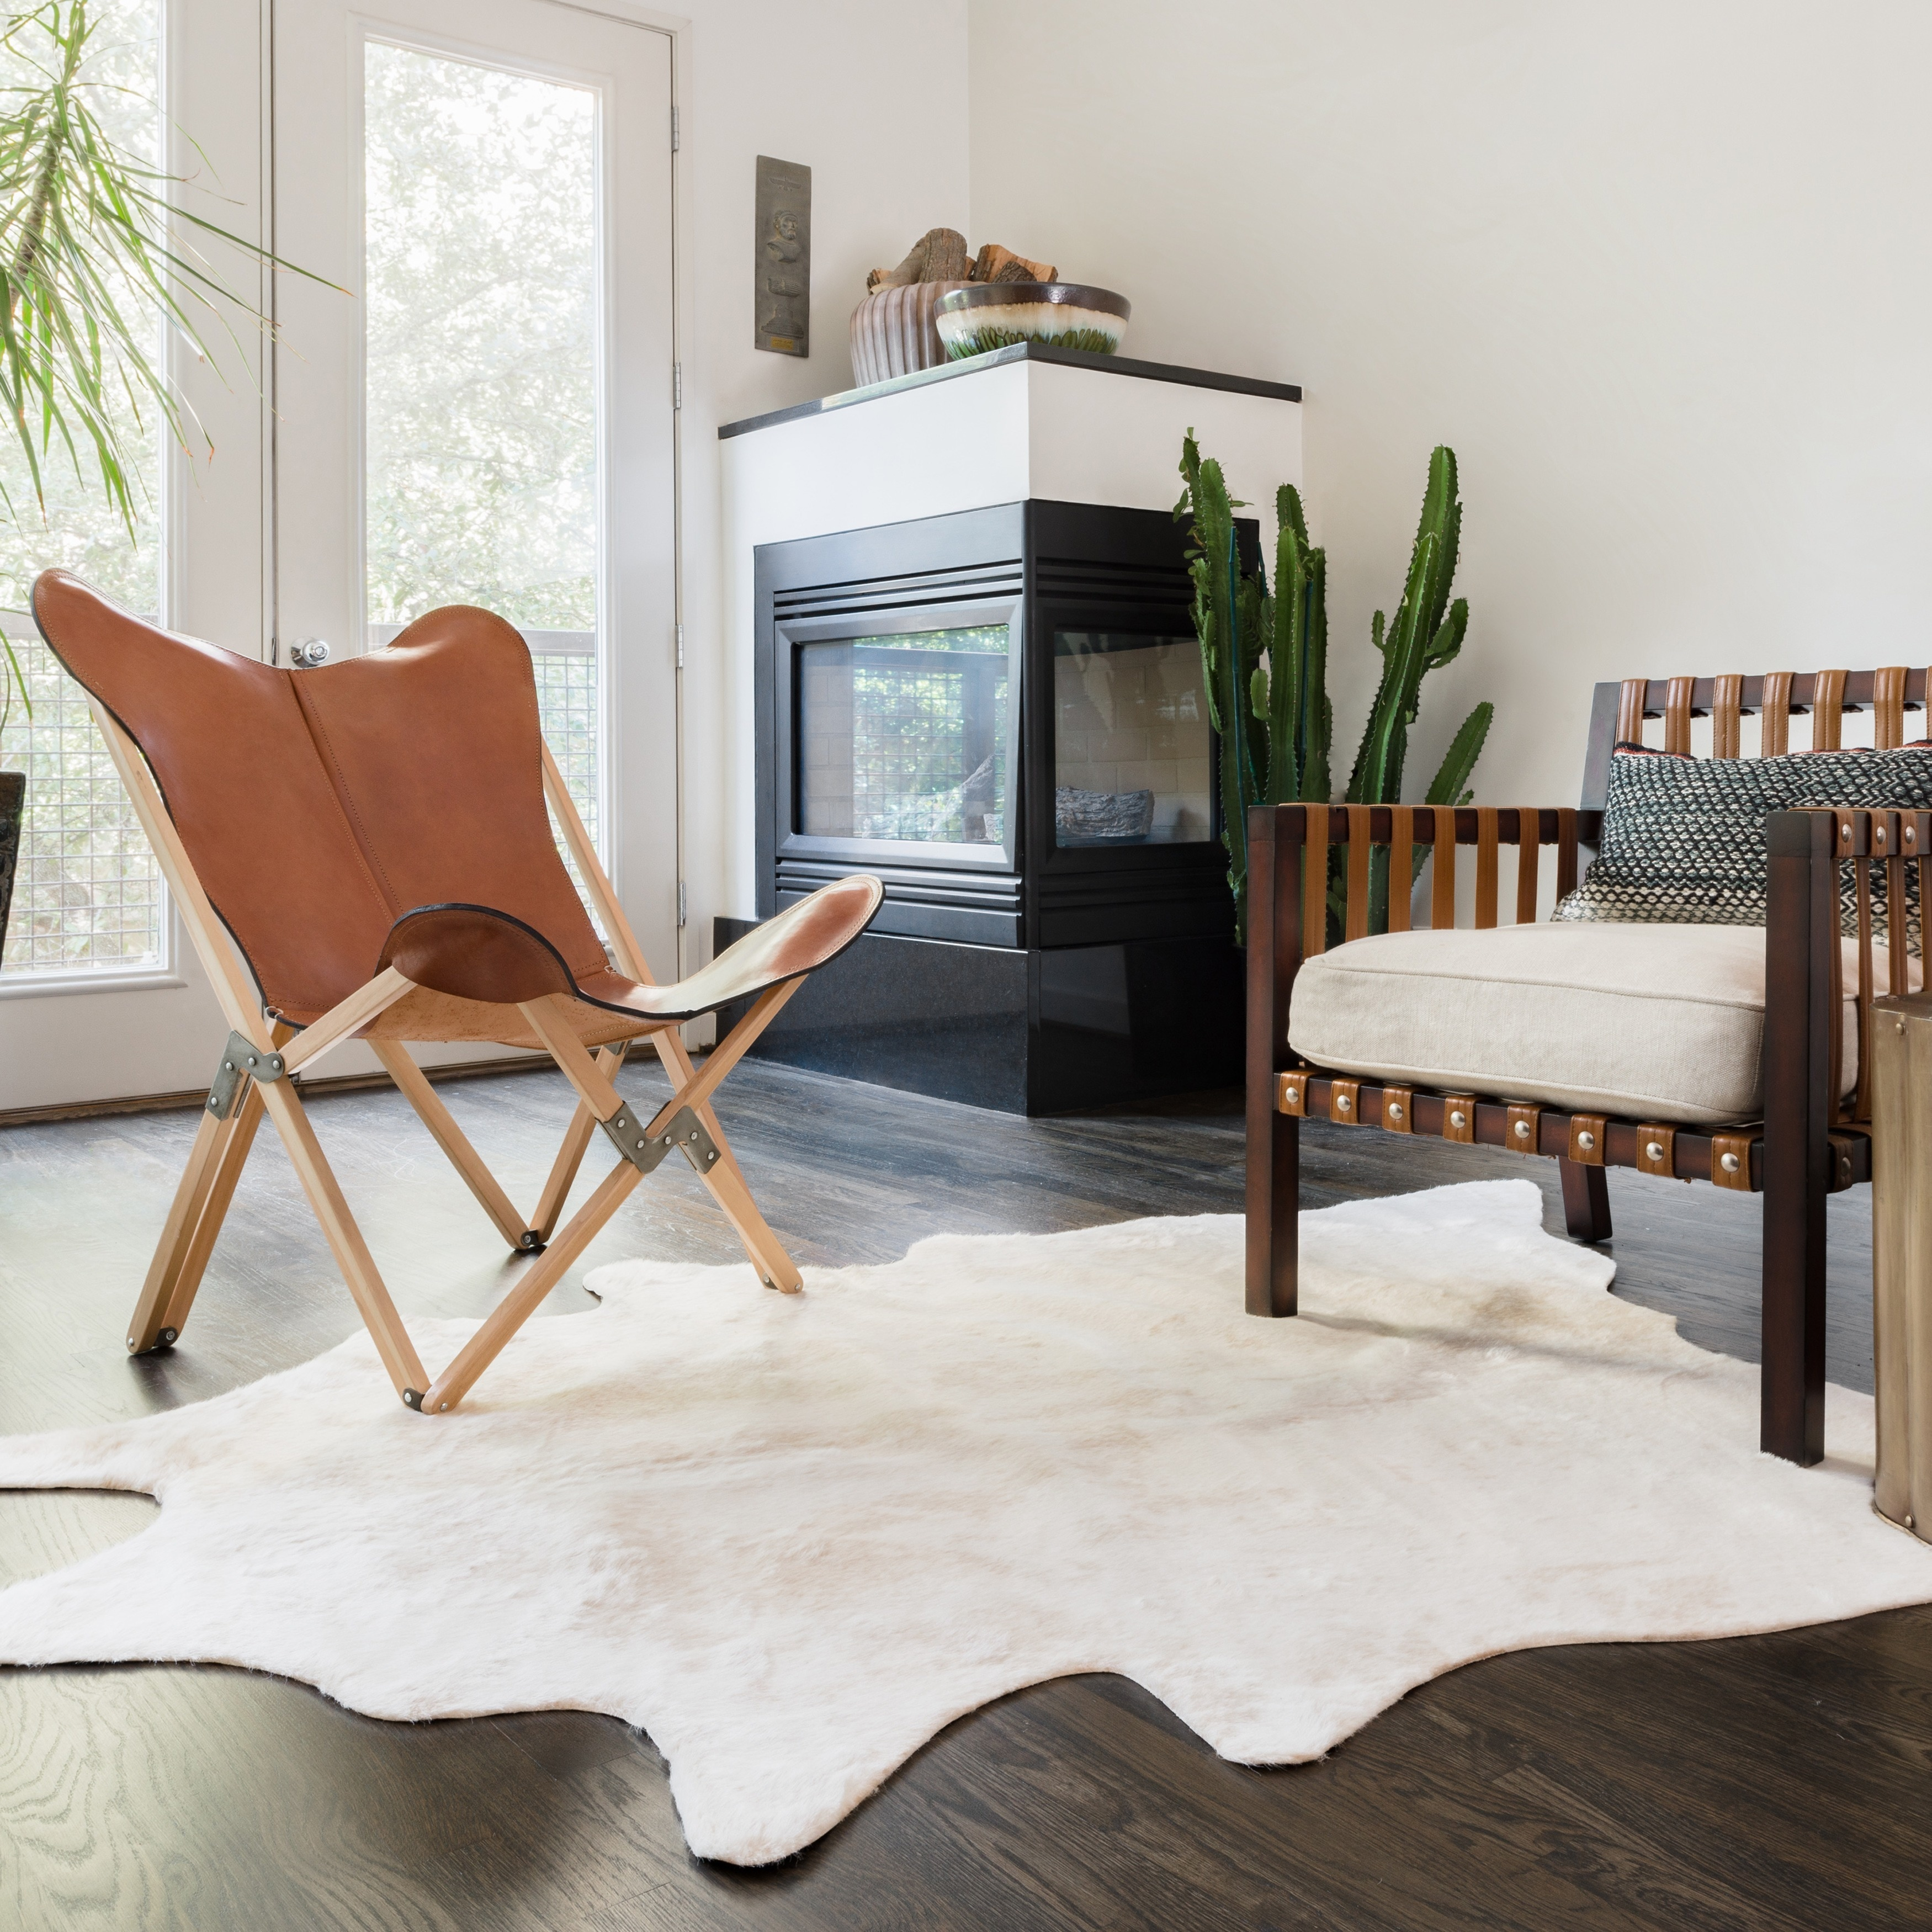 Ikea Cowhide Rug Buy Animal Area Rugs Online At Overstock Our Best Rugs Deals